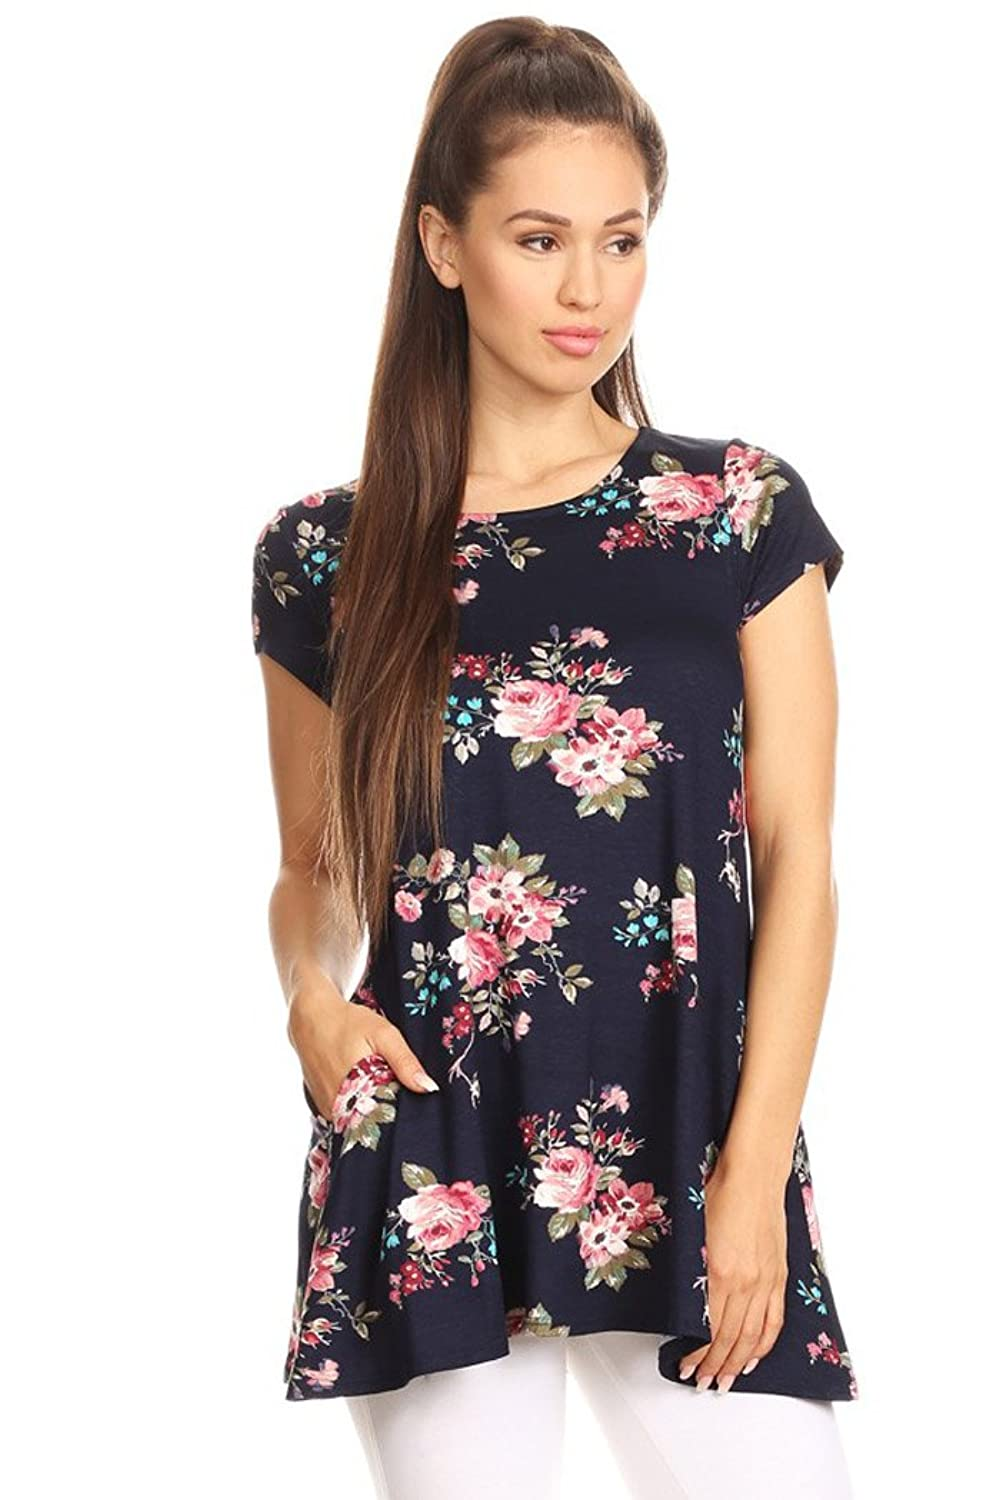 Womens Regular Size Floral Print Side Pocket Short Sleeve Tunic Top. MADE IN USA